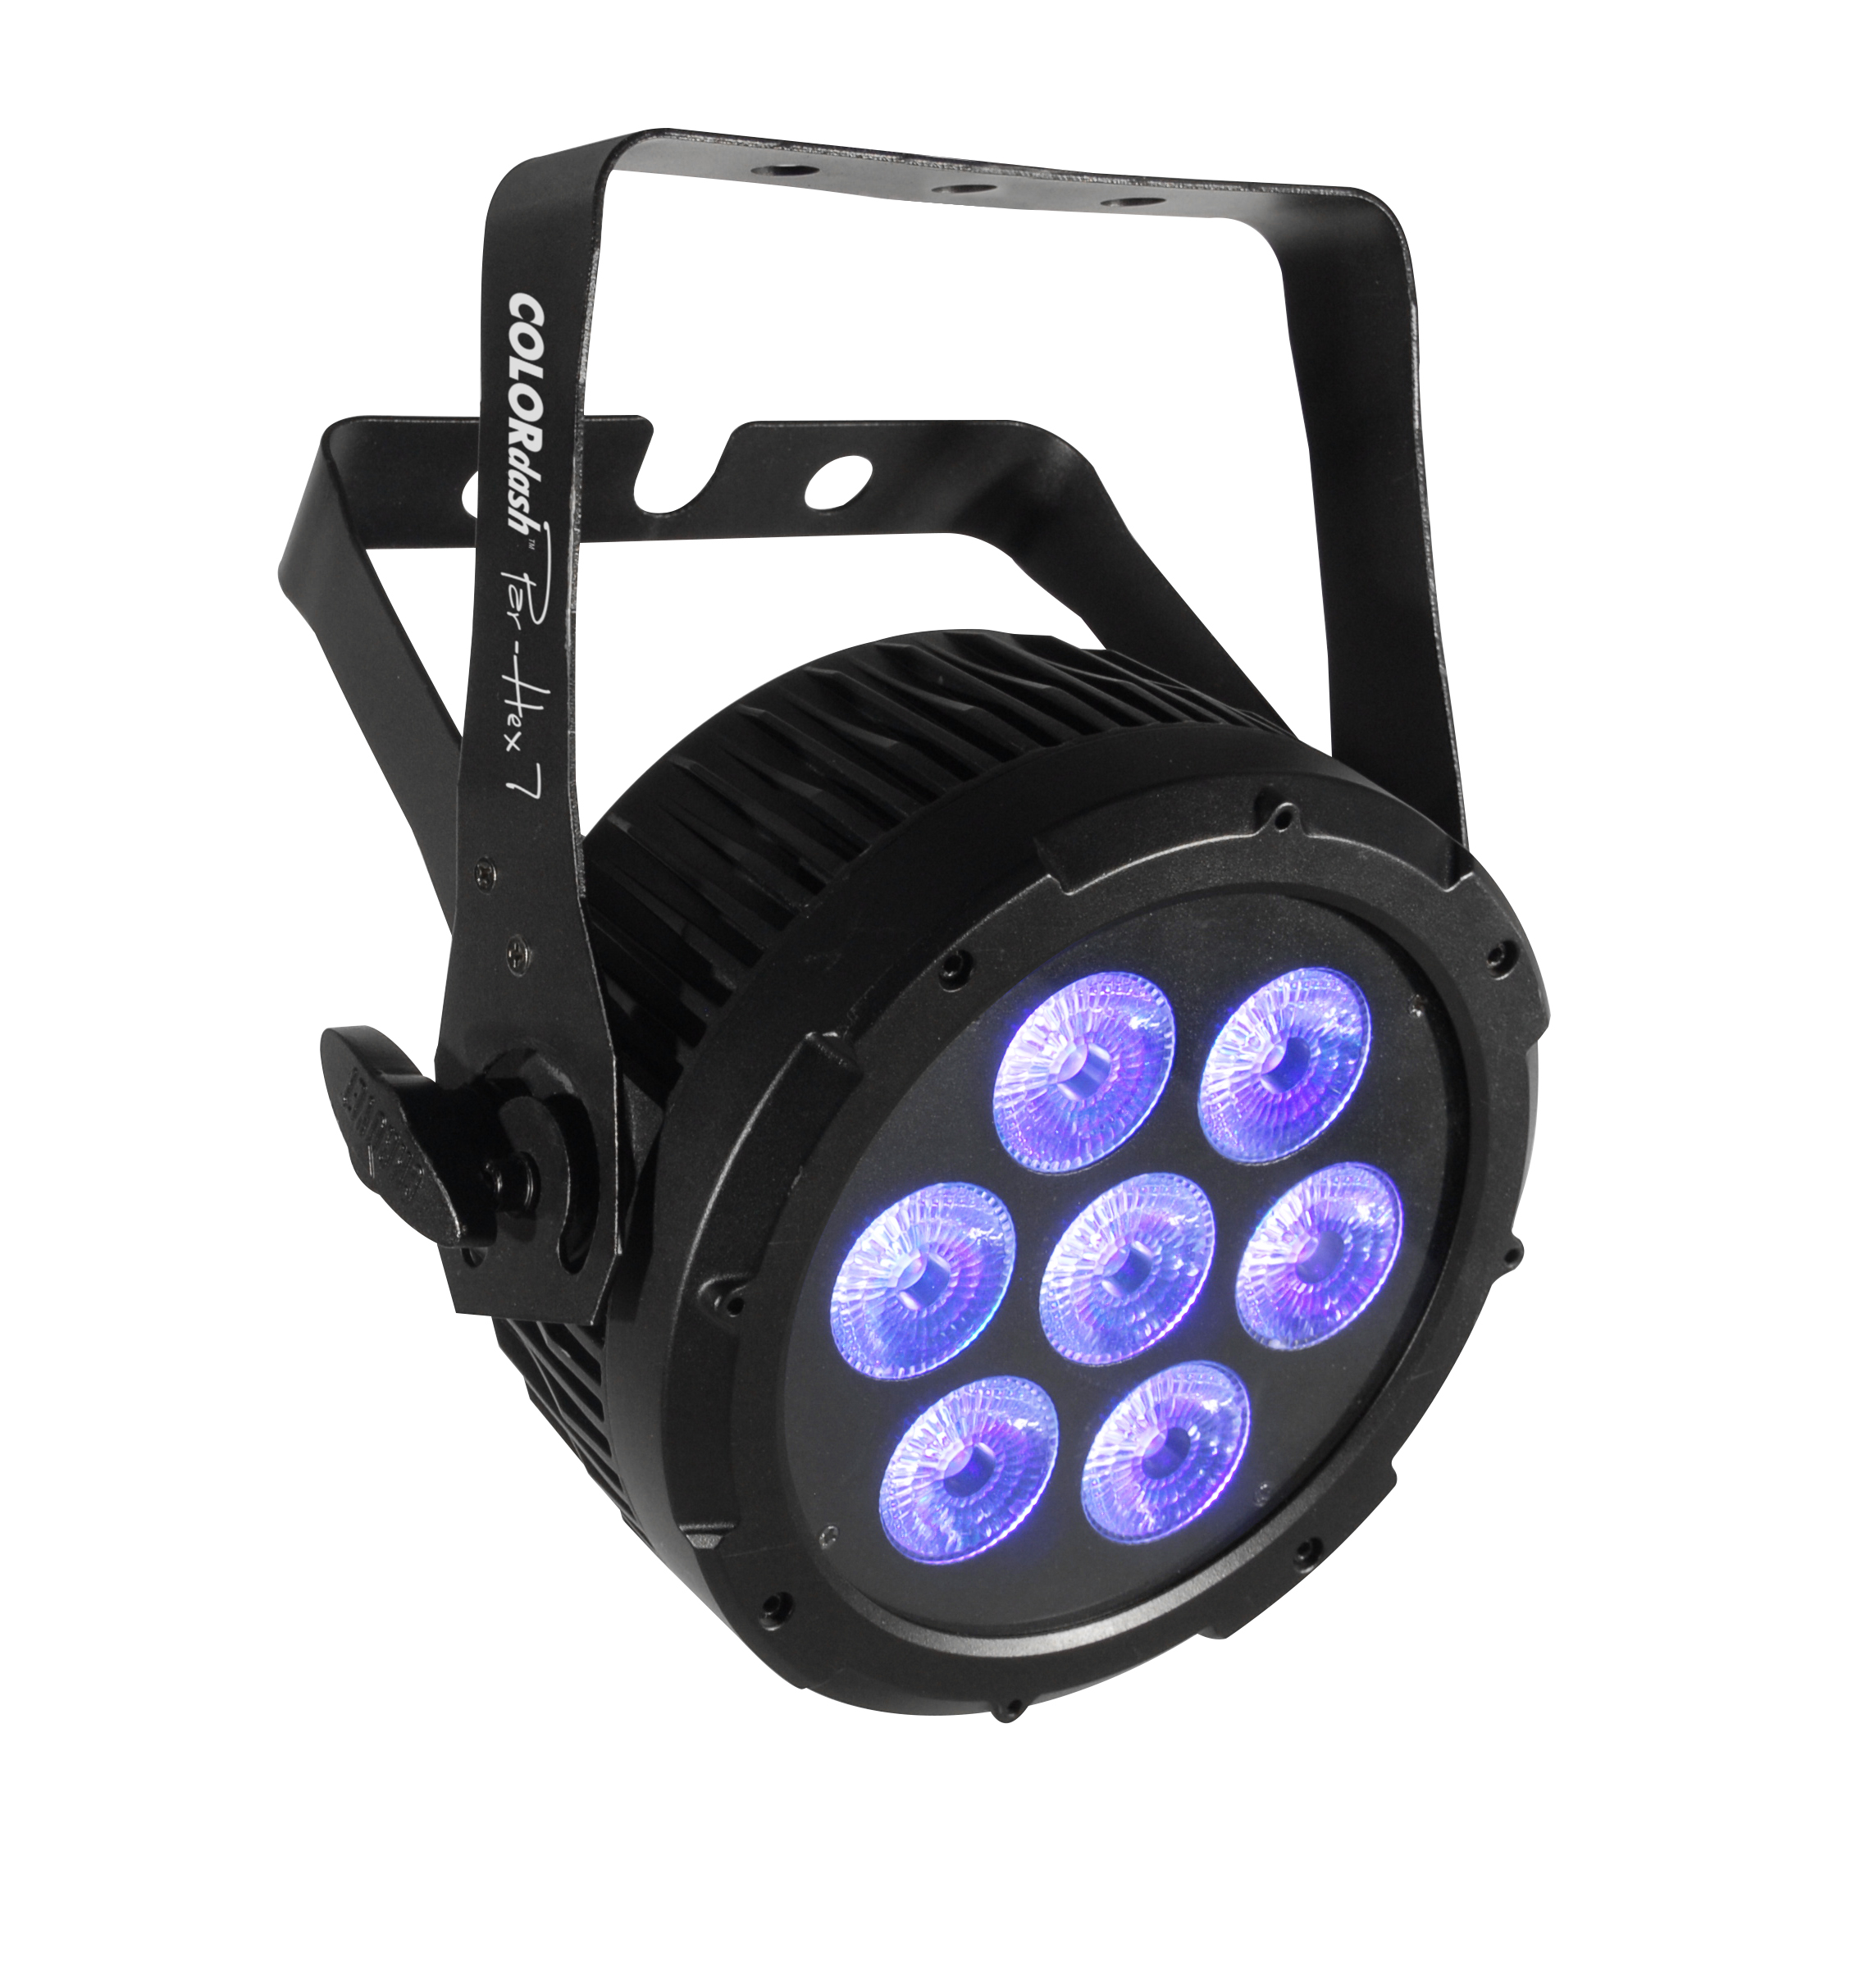 intimidator lighting left p chauvet irc scan